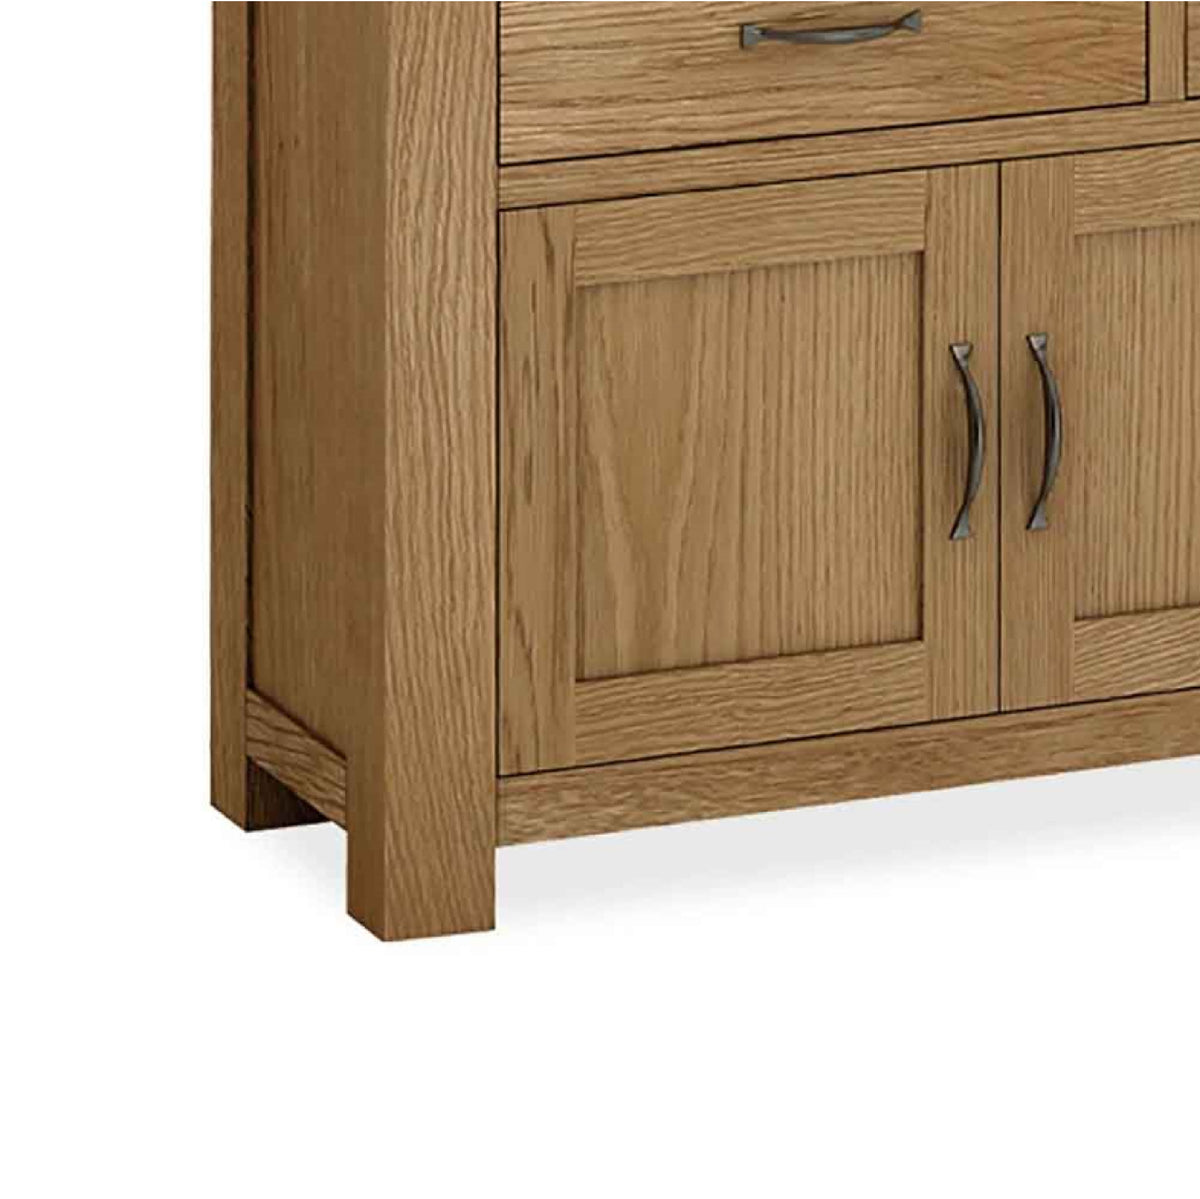 The Abbey Grande Extra Large King Oak Sideboard - Close Up of Bottom Corner